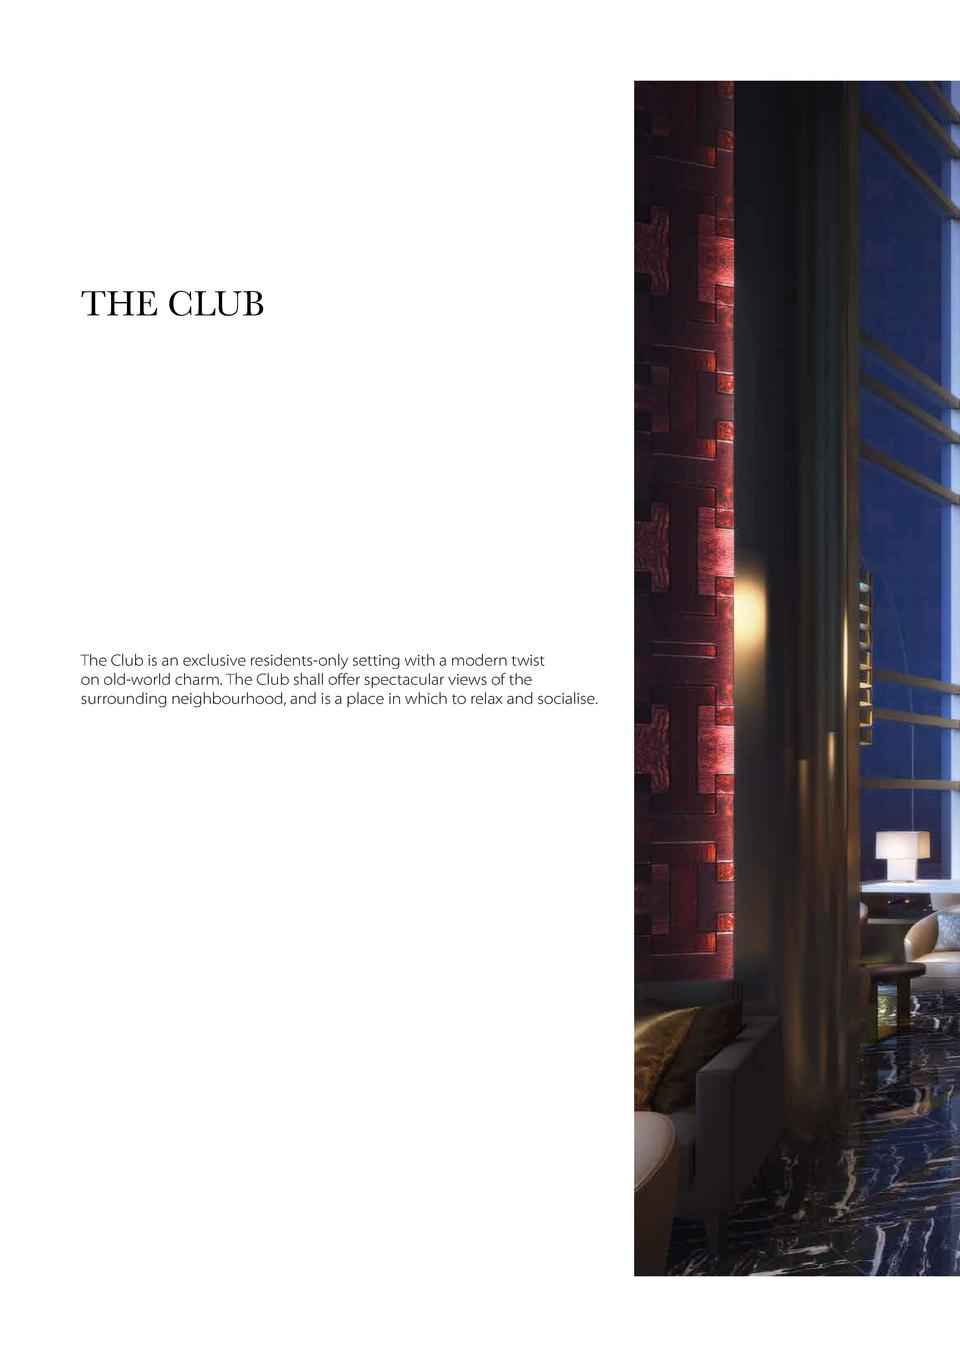 THE CLUB  The Club is an exclusive residents-only setting with a modern twist on old-world charm. The Club shall offer spe...